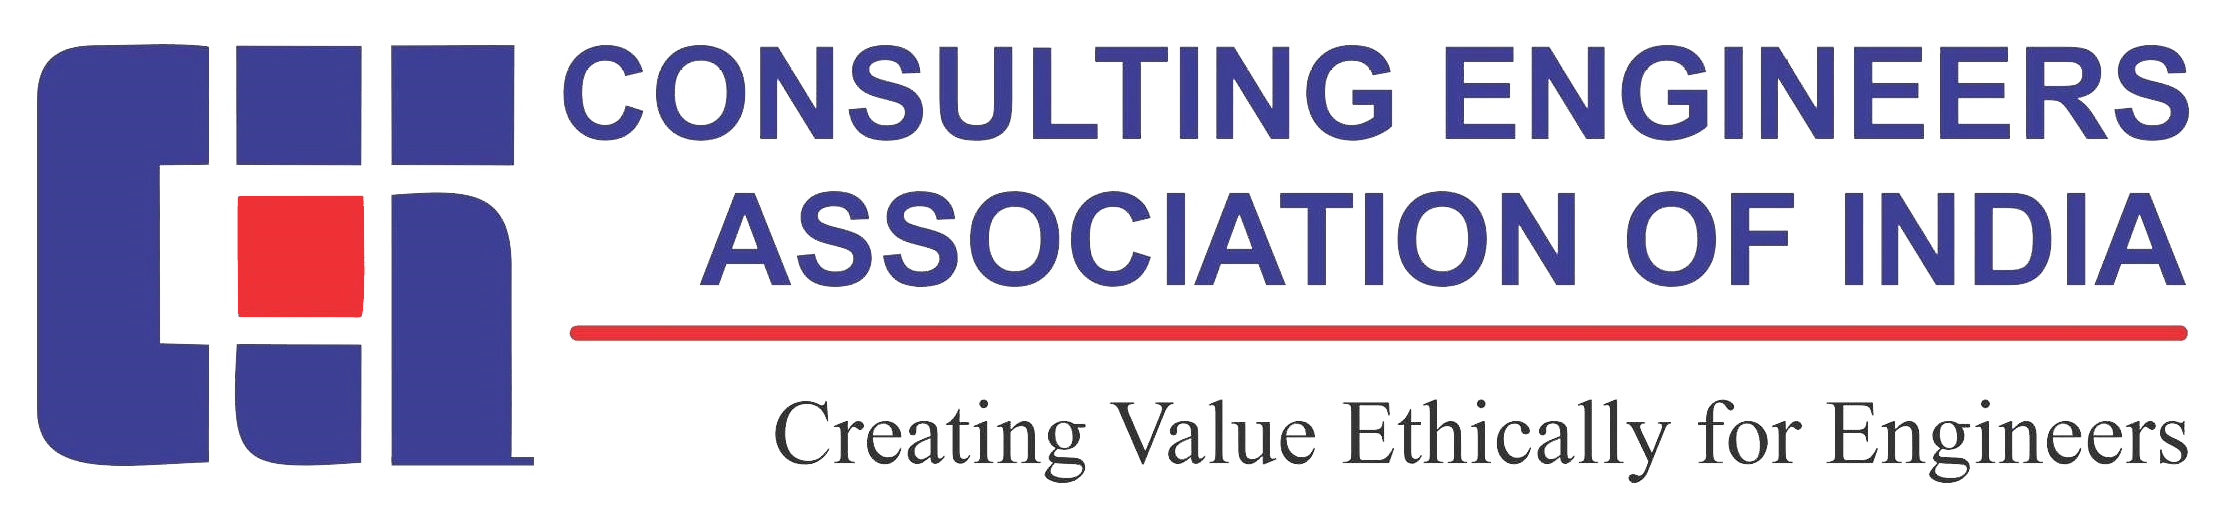 Consulting Engineers Association of India